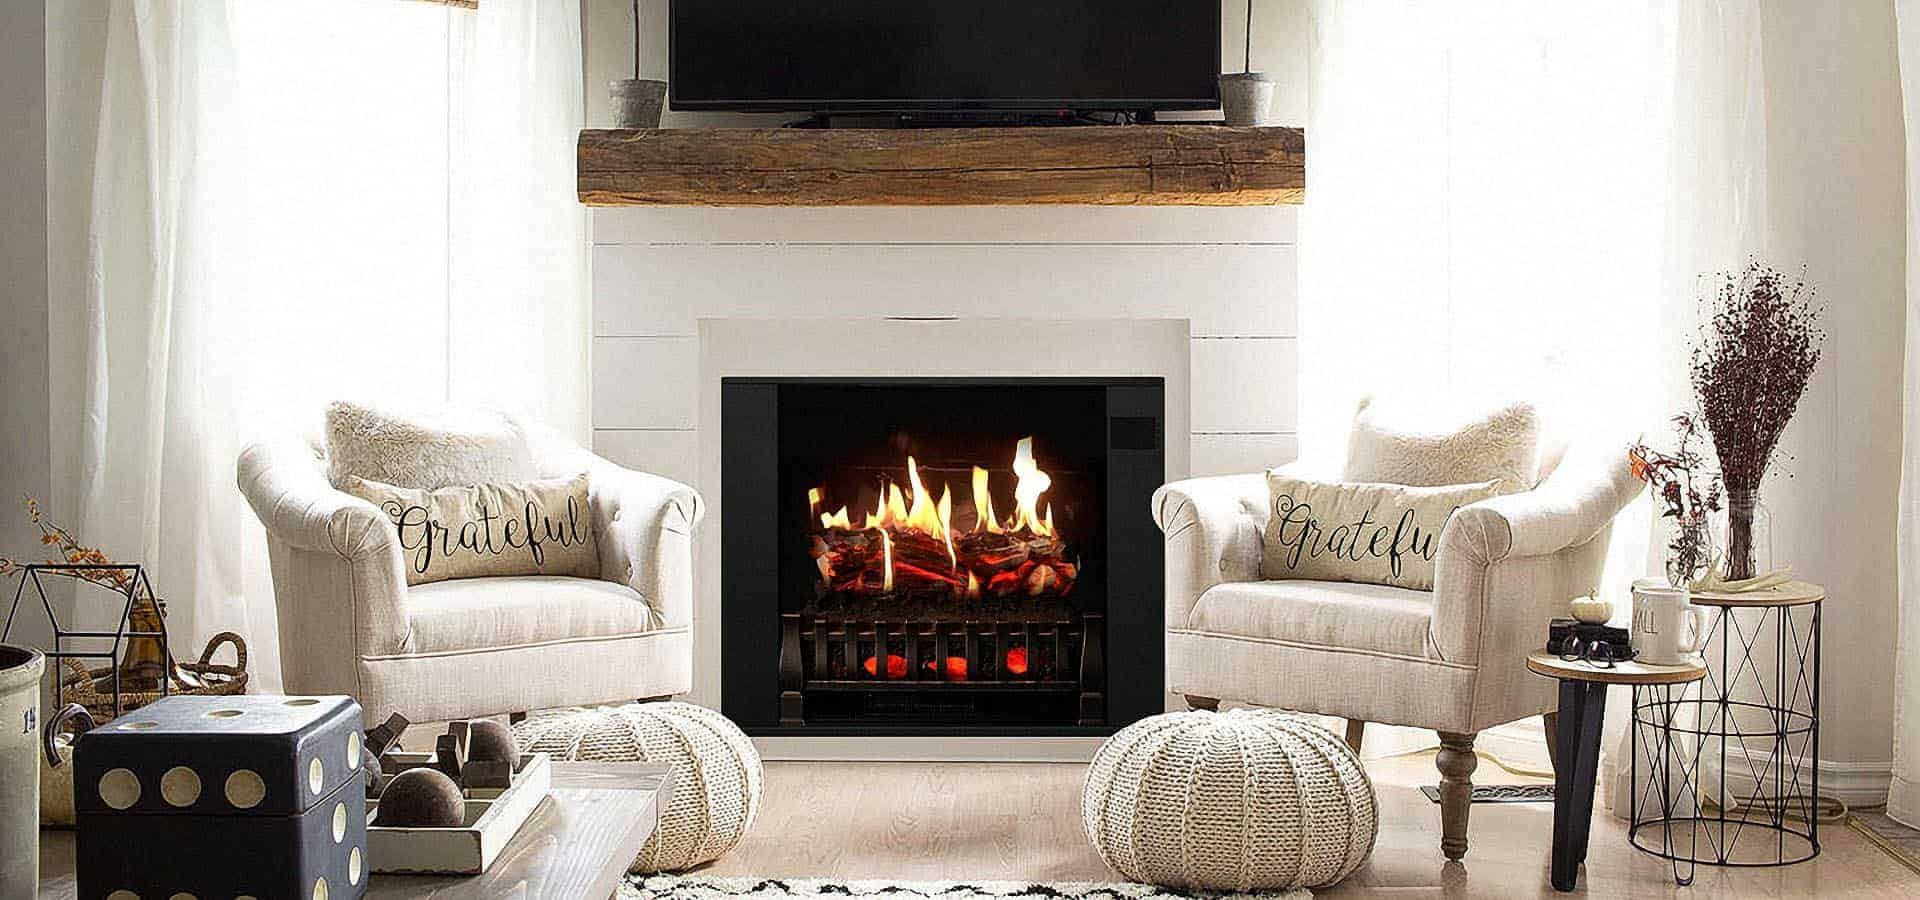 how odes an electric fireplace work